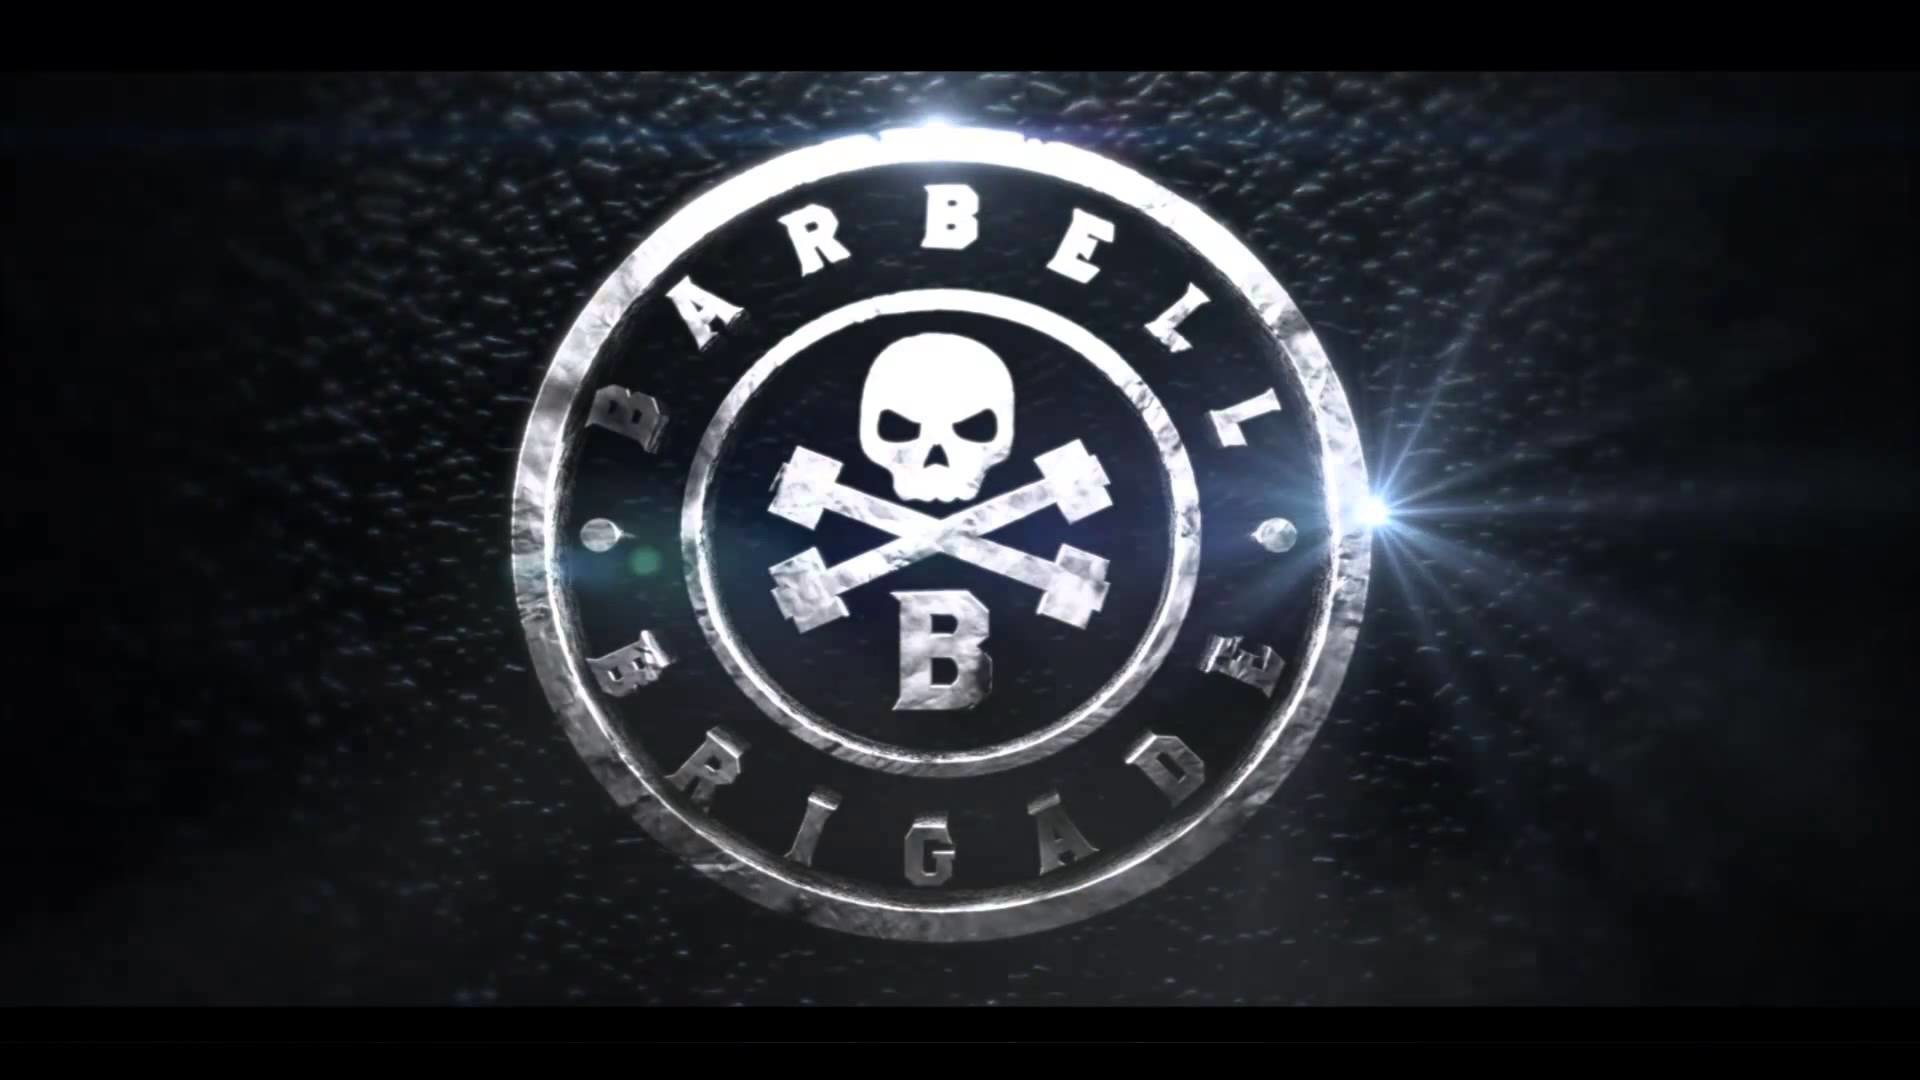 1920x1080 Displaying 20> Images For - Crossfit Barbell Wallpaper.